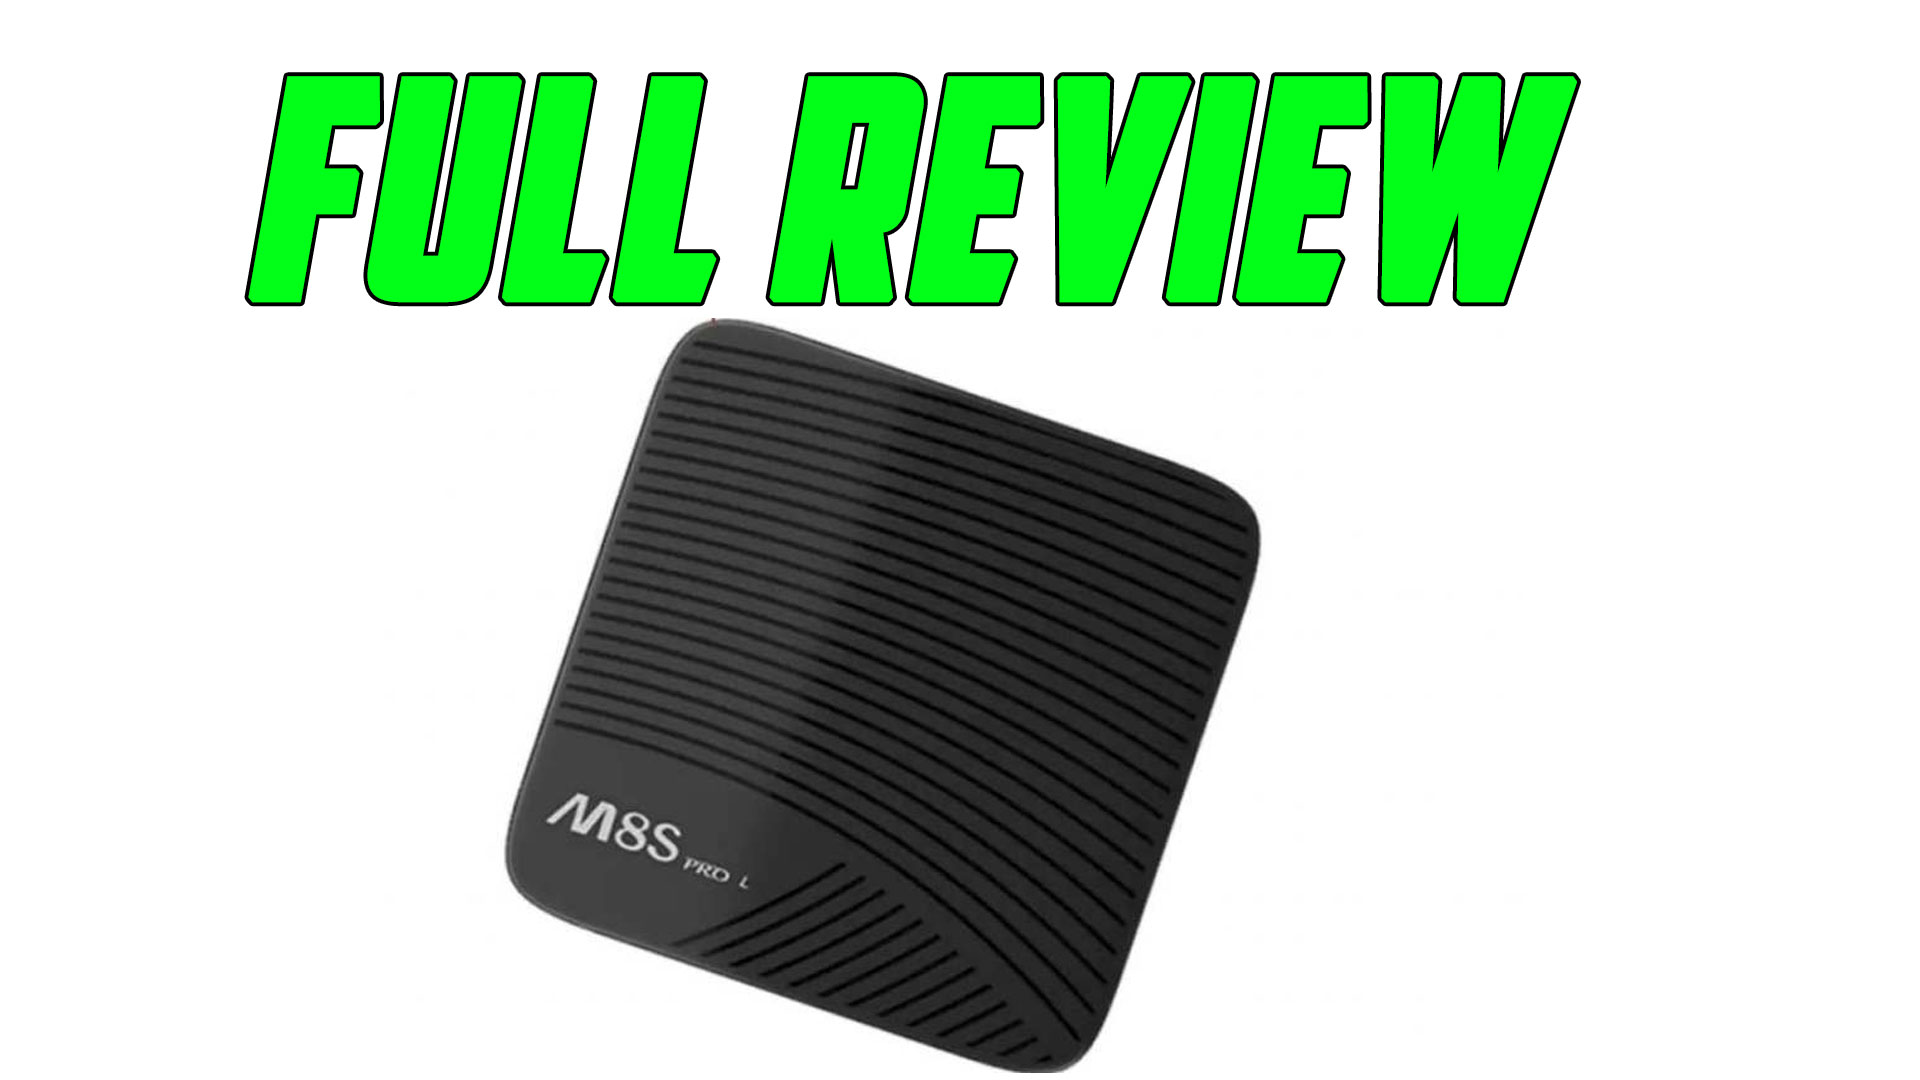 Mecool M8s Pro L Android Tv Box Review - Somurich com